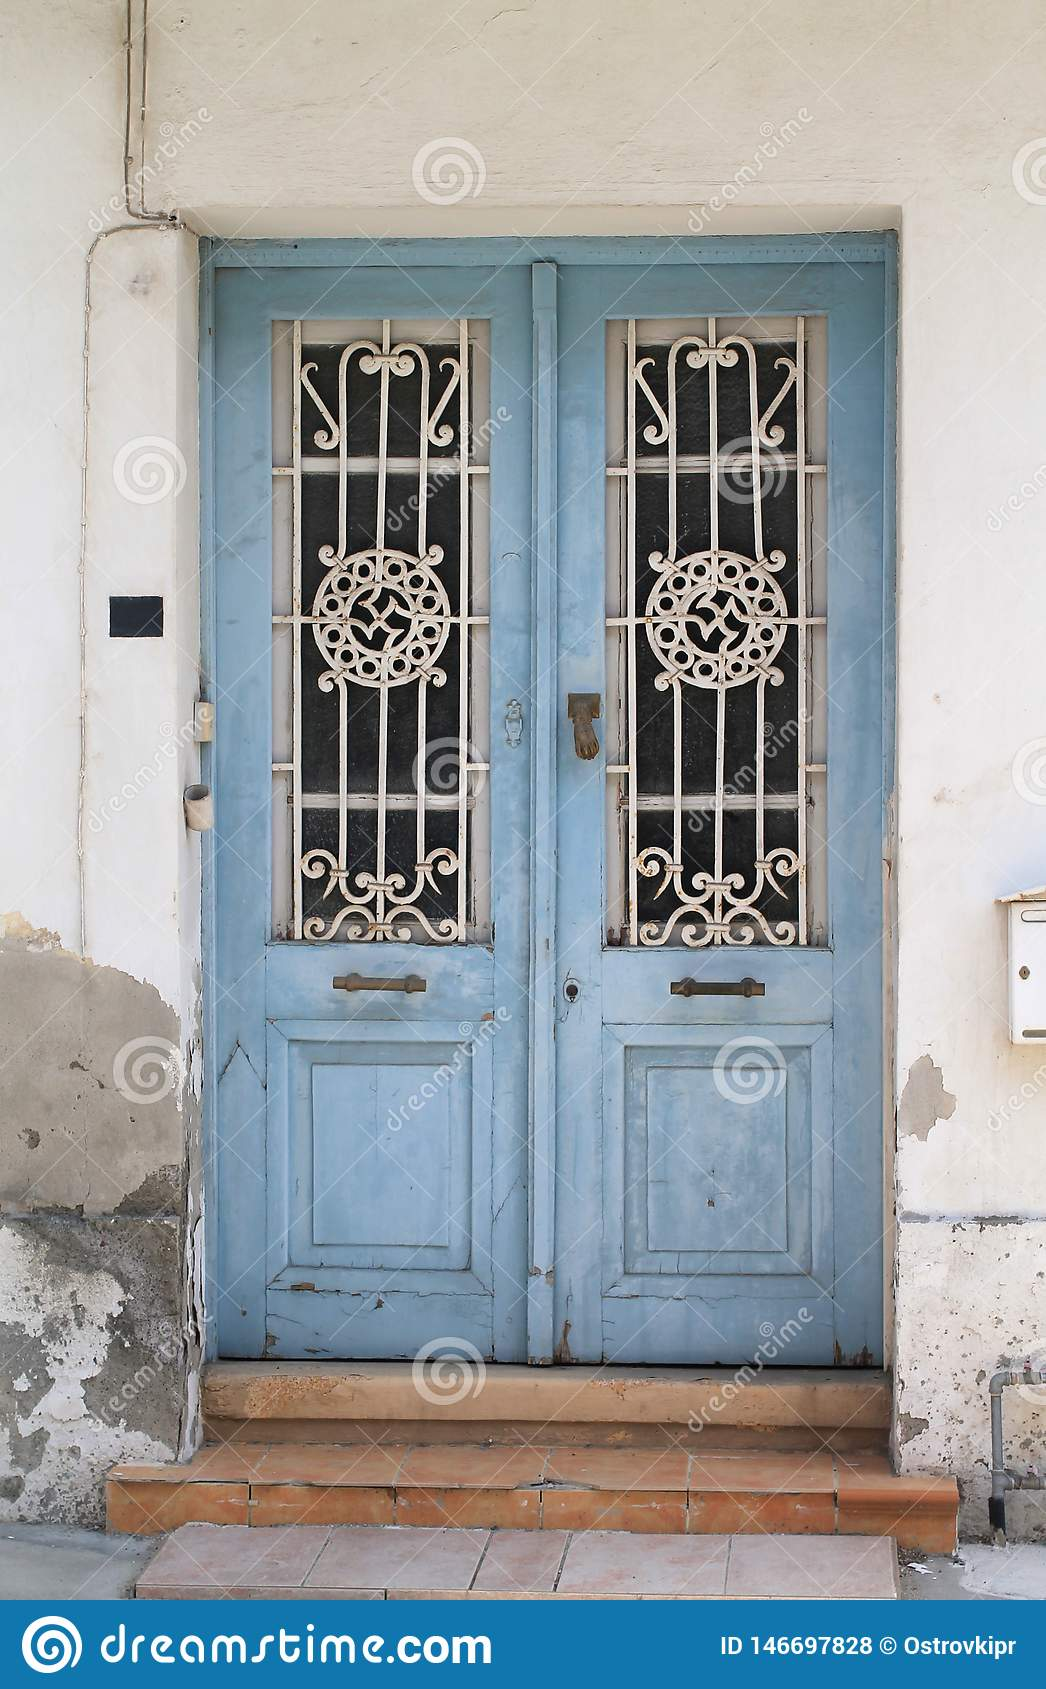 Old Wooden Door With Glass Panels And Metal Grates Stock Photo Image Of Metal Weathered 146697828